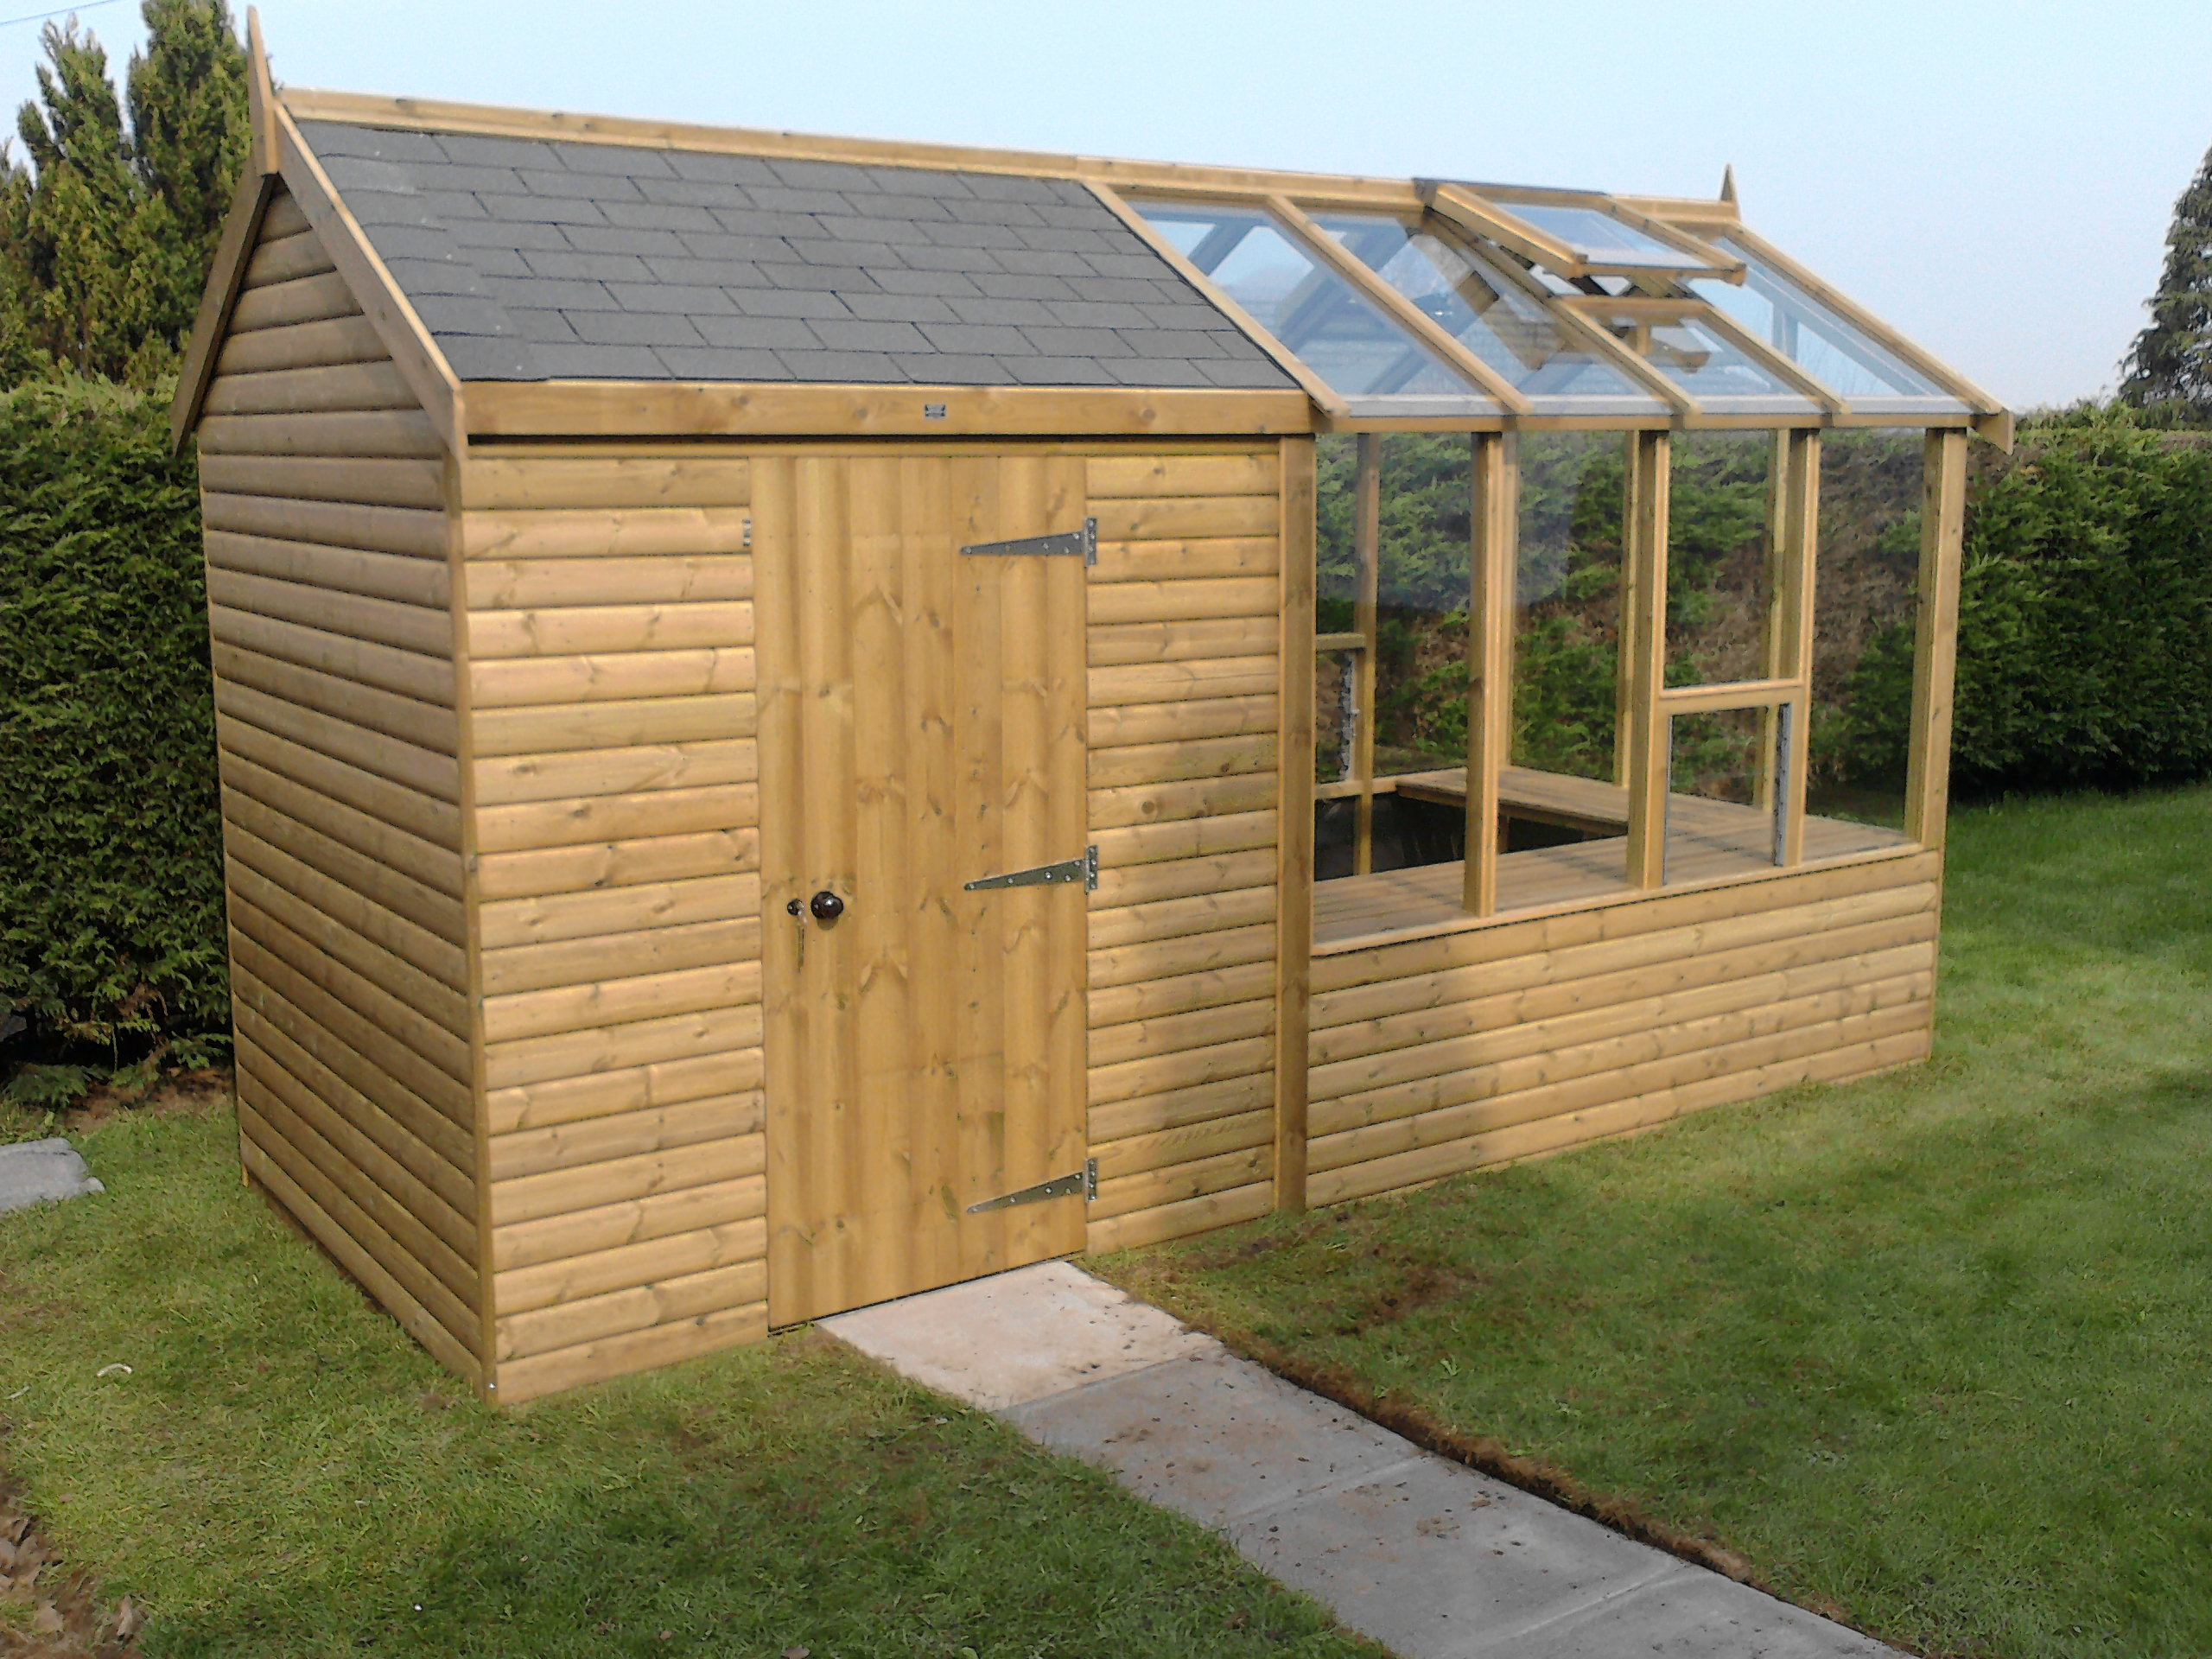 Greenhouse Garden Shed : Locating Free Shed Plans On The Internet | Shed Plans Kits